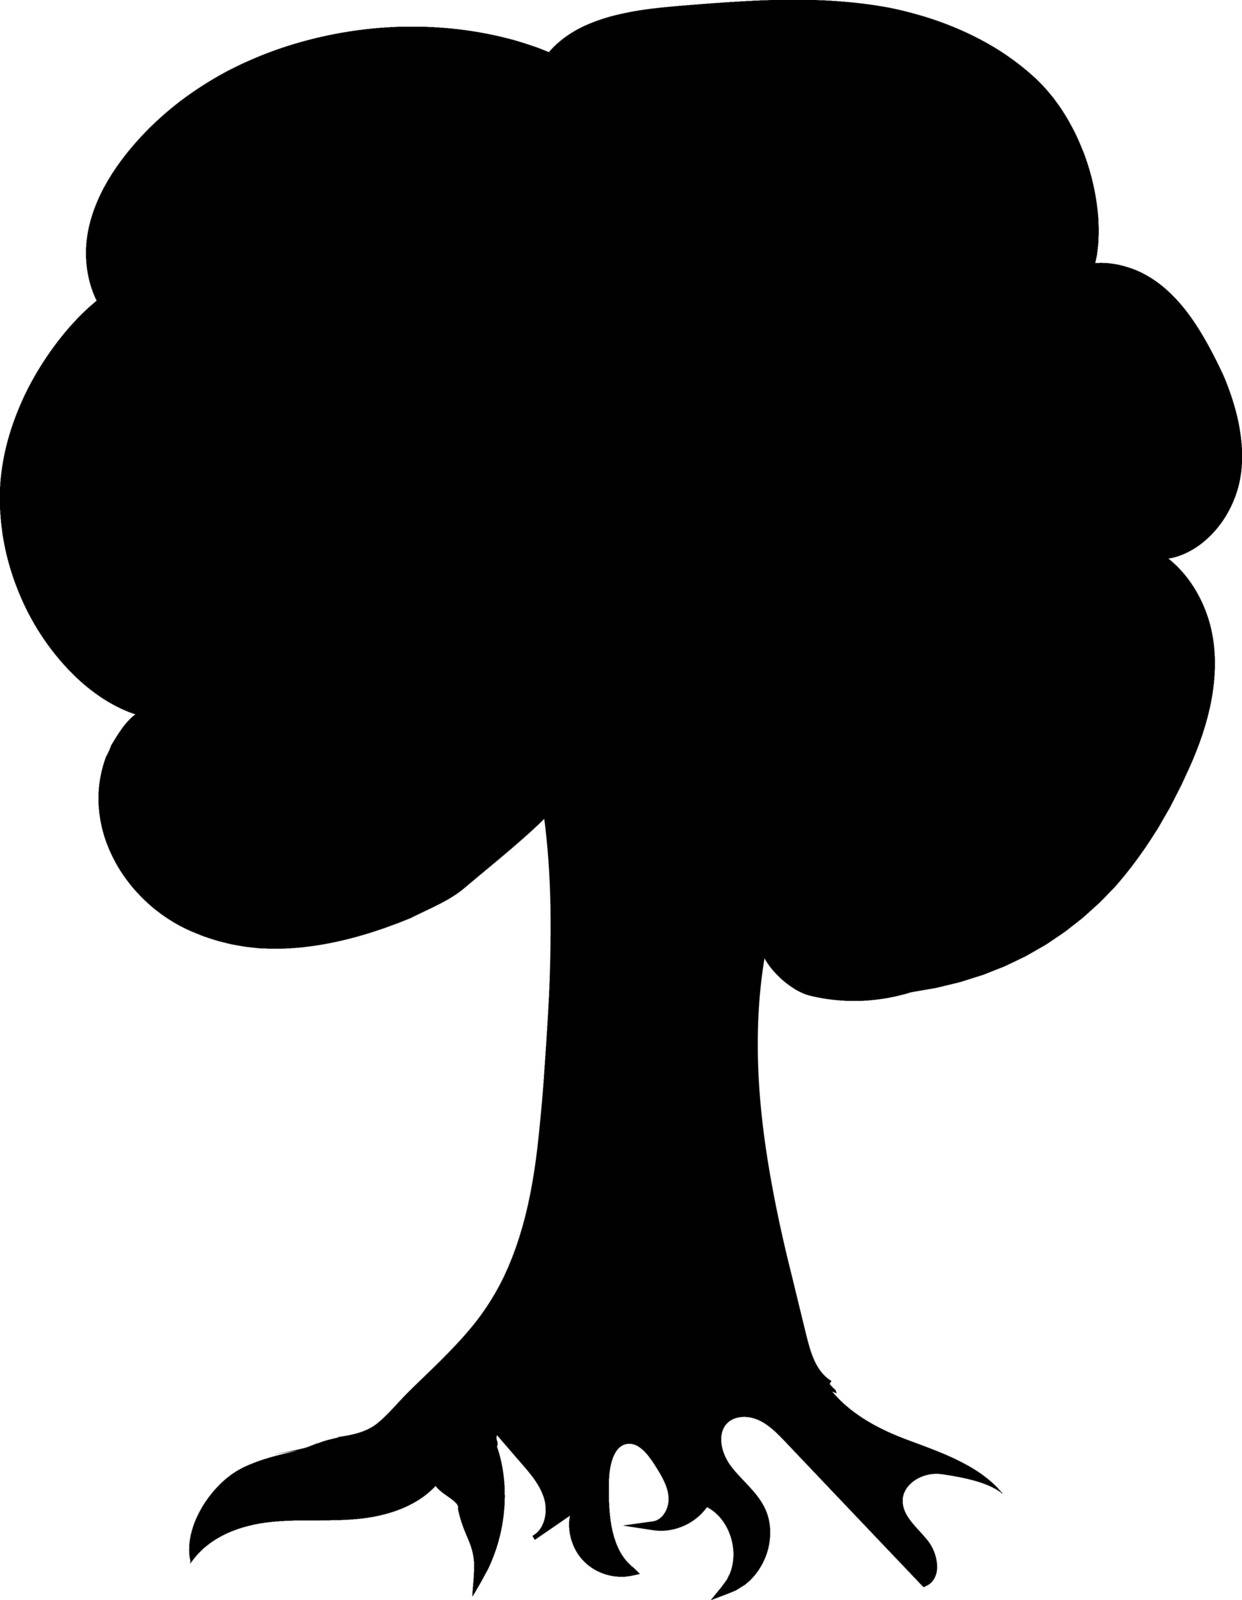 Vector illustration of a silhouette of a tree. Natural illustration.